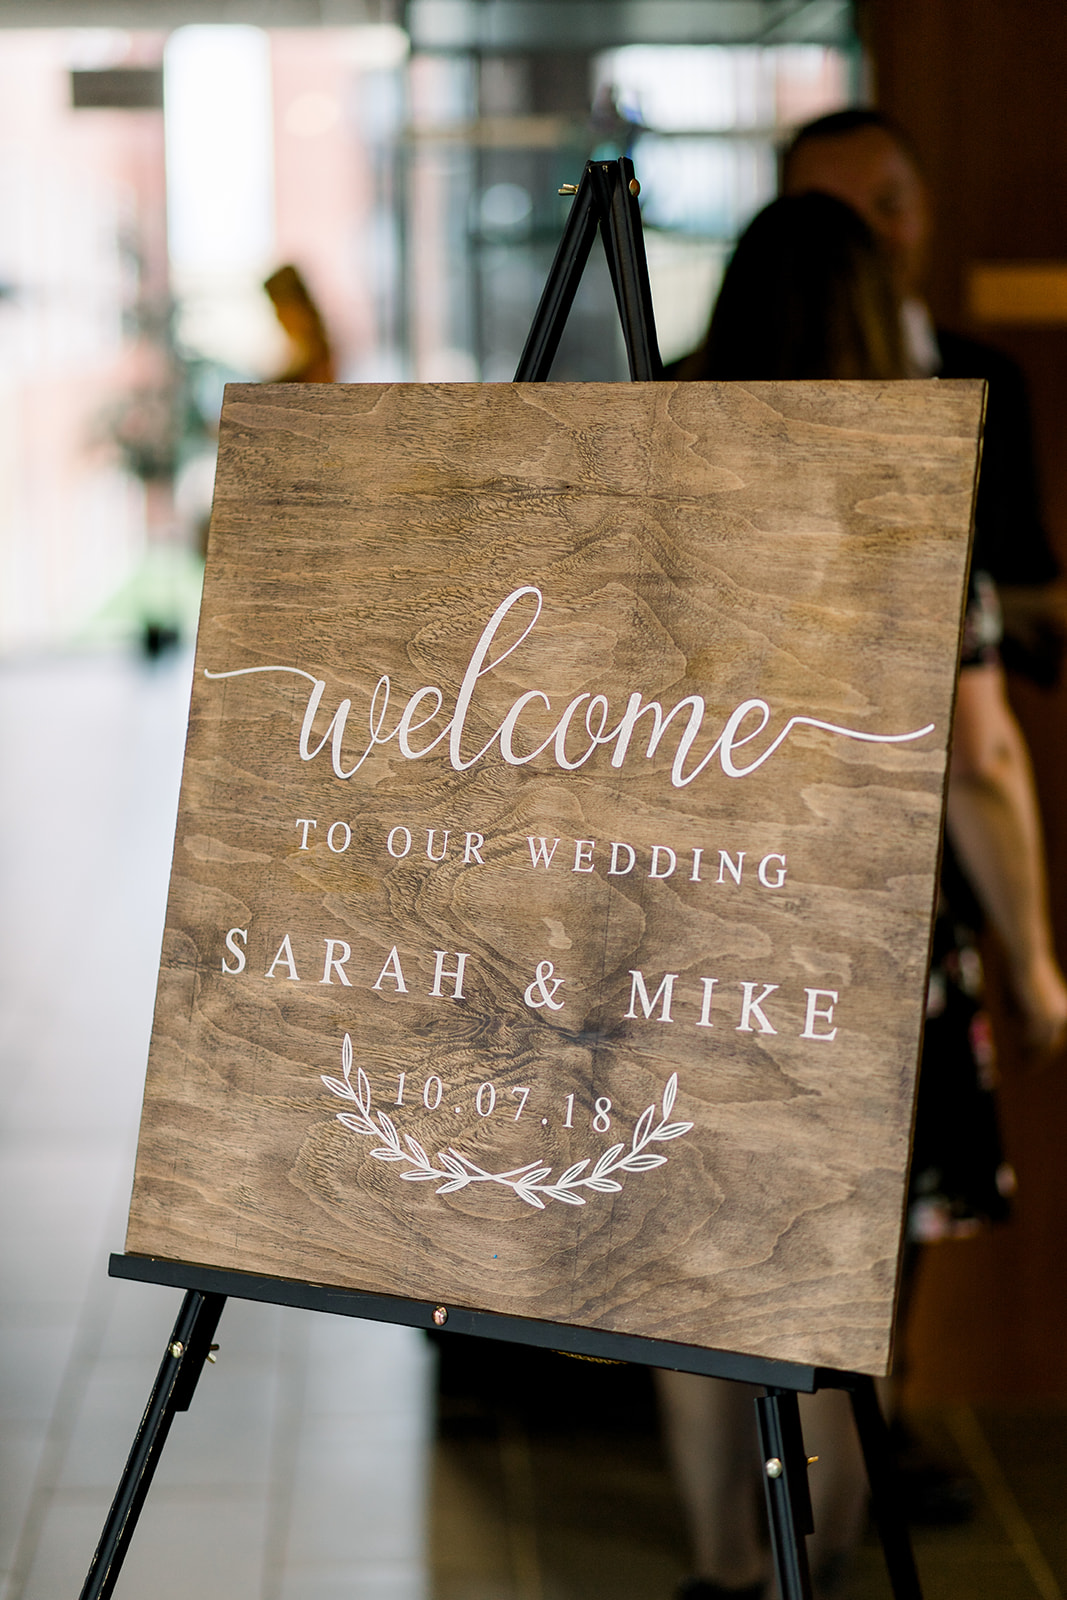 Personalized wooden signs  Photo by  Caley Joy Photography